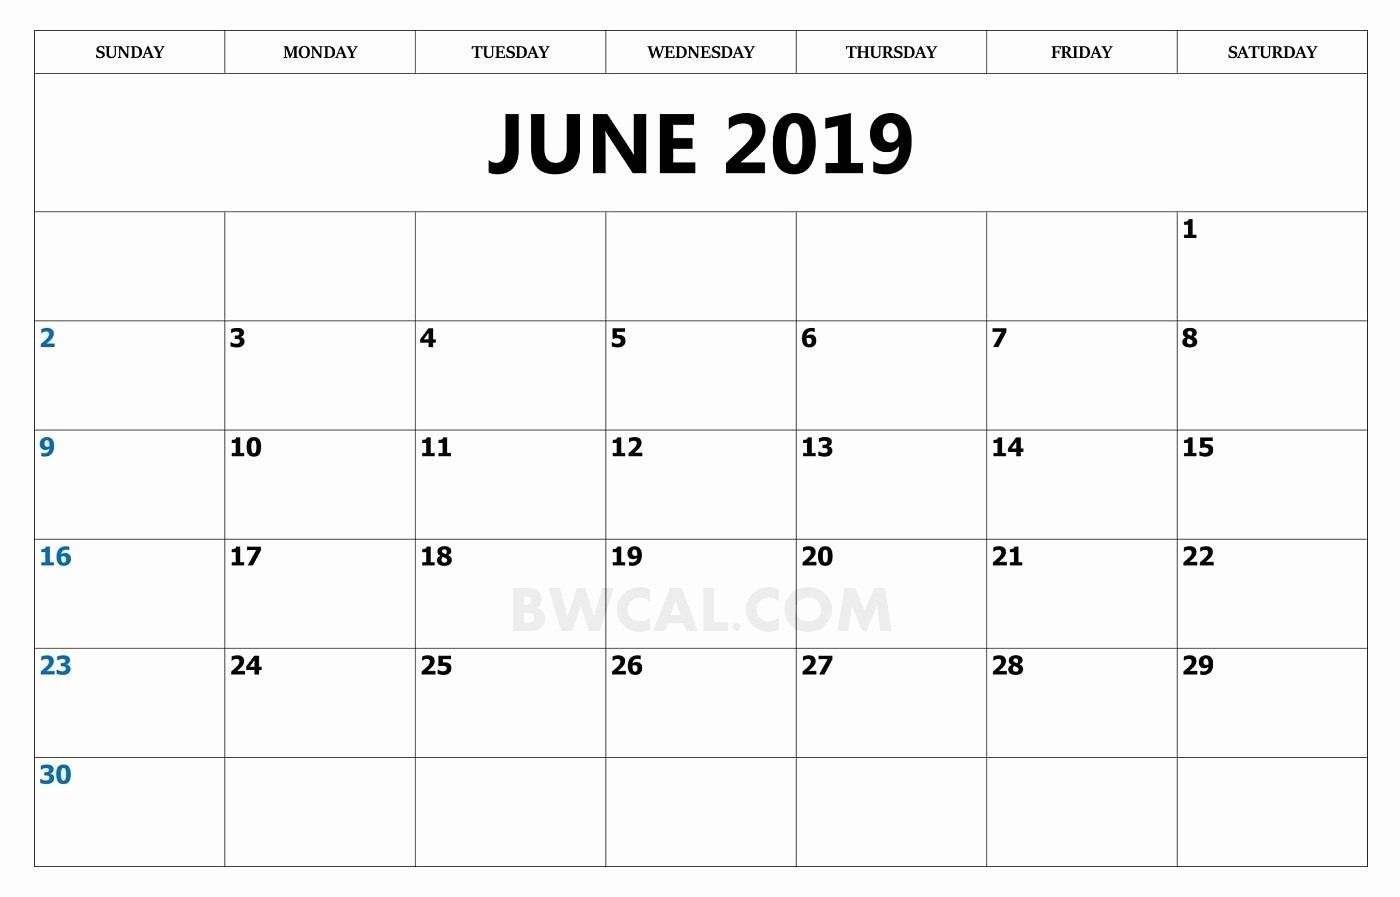 30 june 2019 calendar template year::June 2019 Calendar